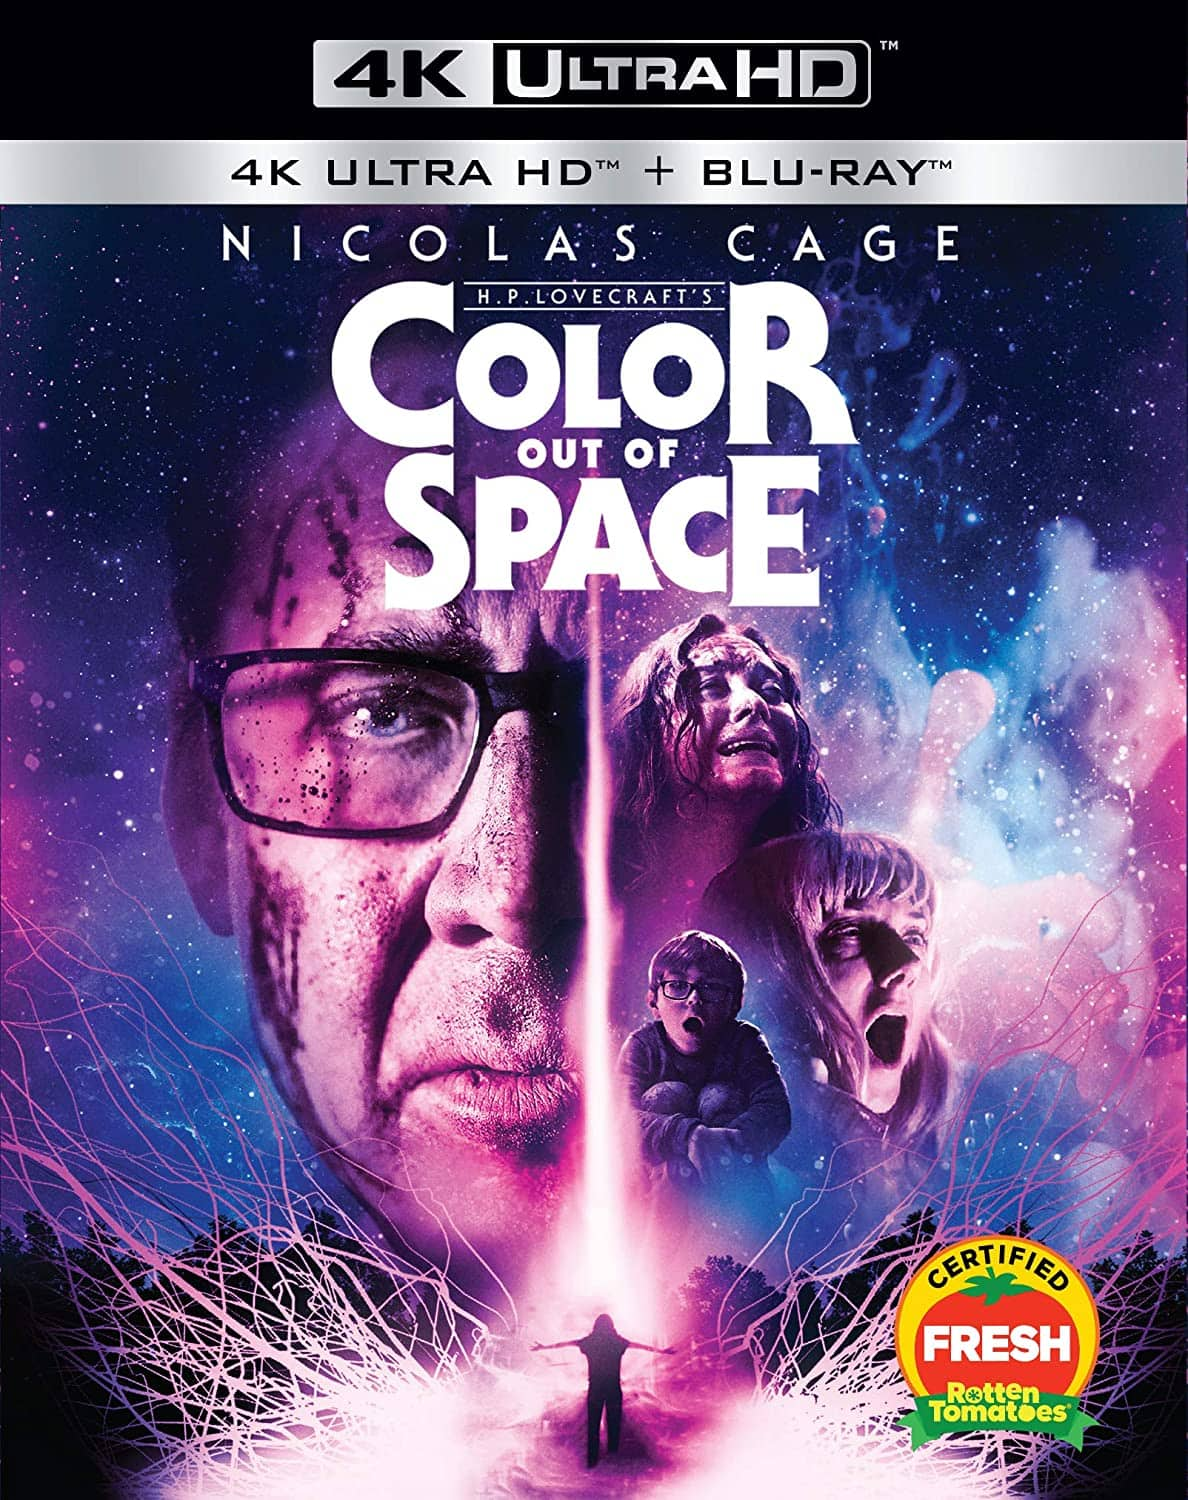 Color Out of Space - 4K/UHD + Blu-ray (No Digital Code) $12.96